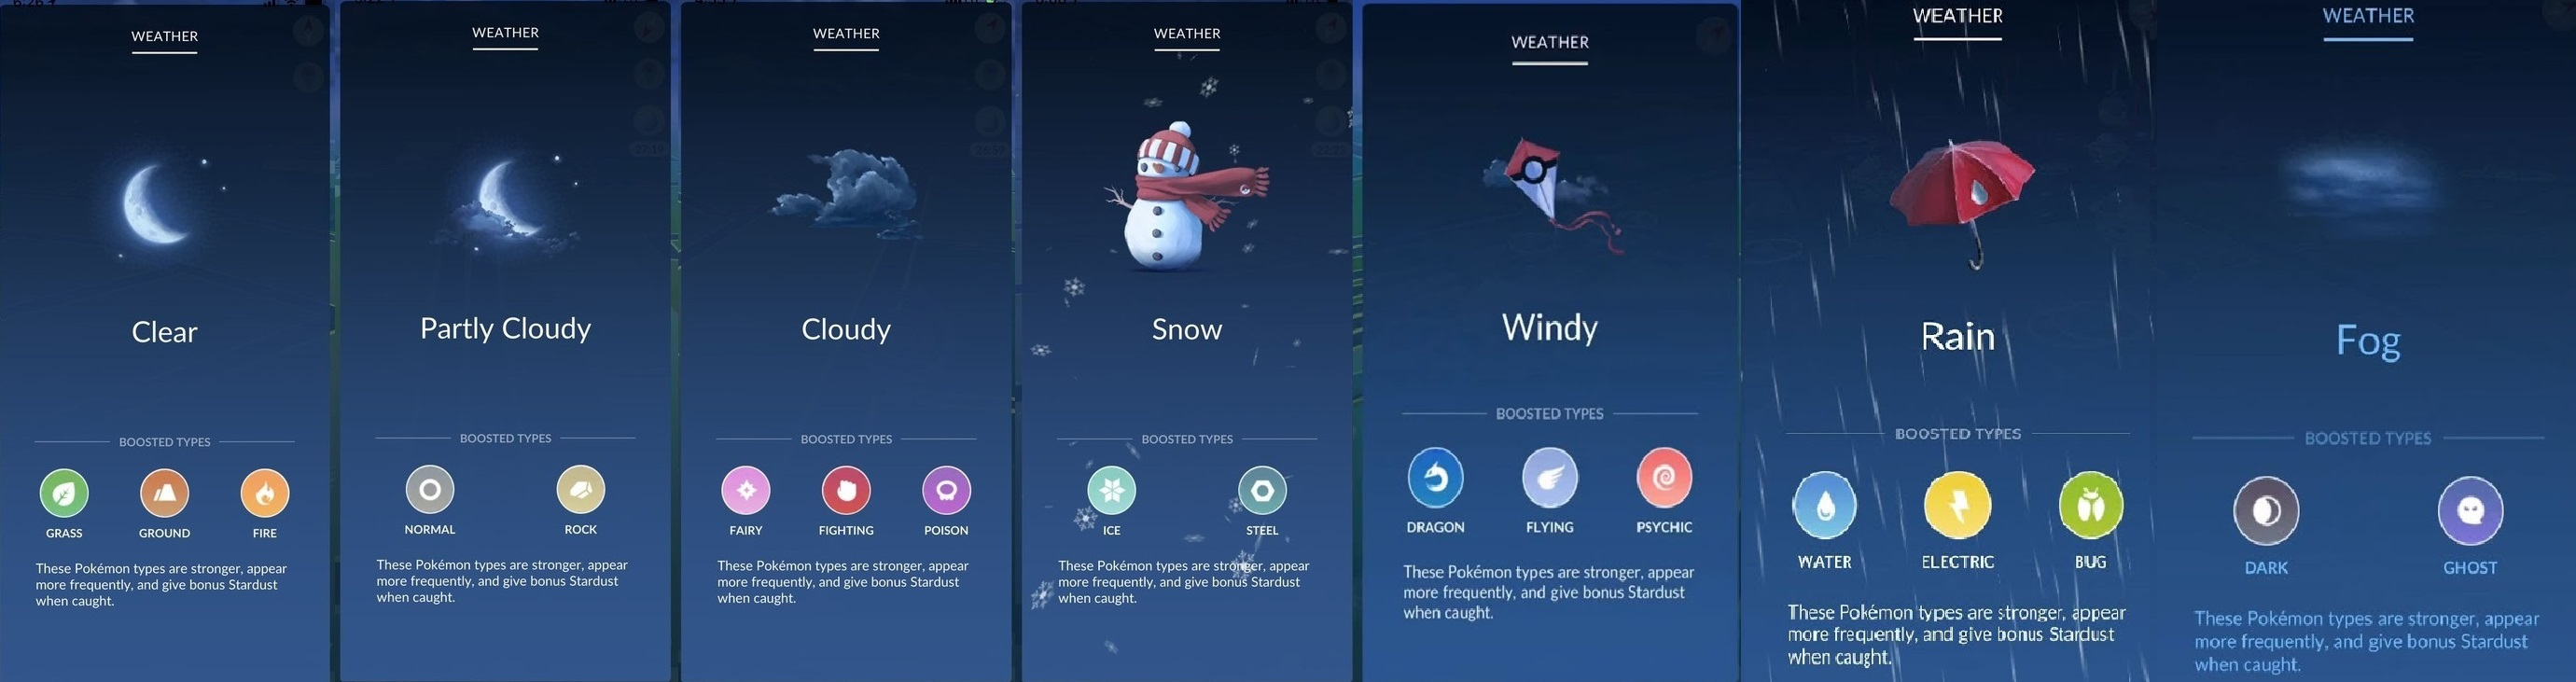 Photo of Raid Bosses and Weather in Pokemon Go, Take Advantage of Catching Lvl 25 Raid Bosses